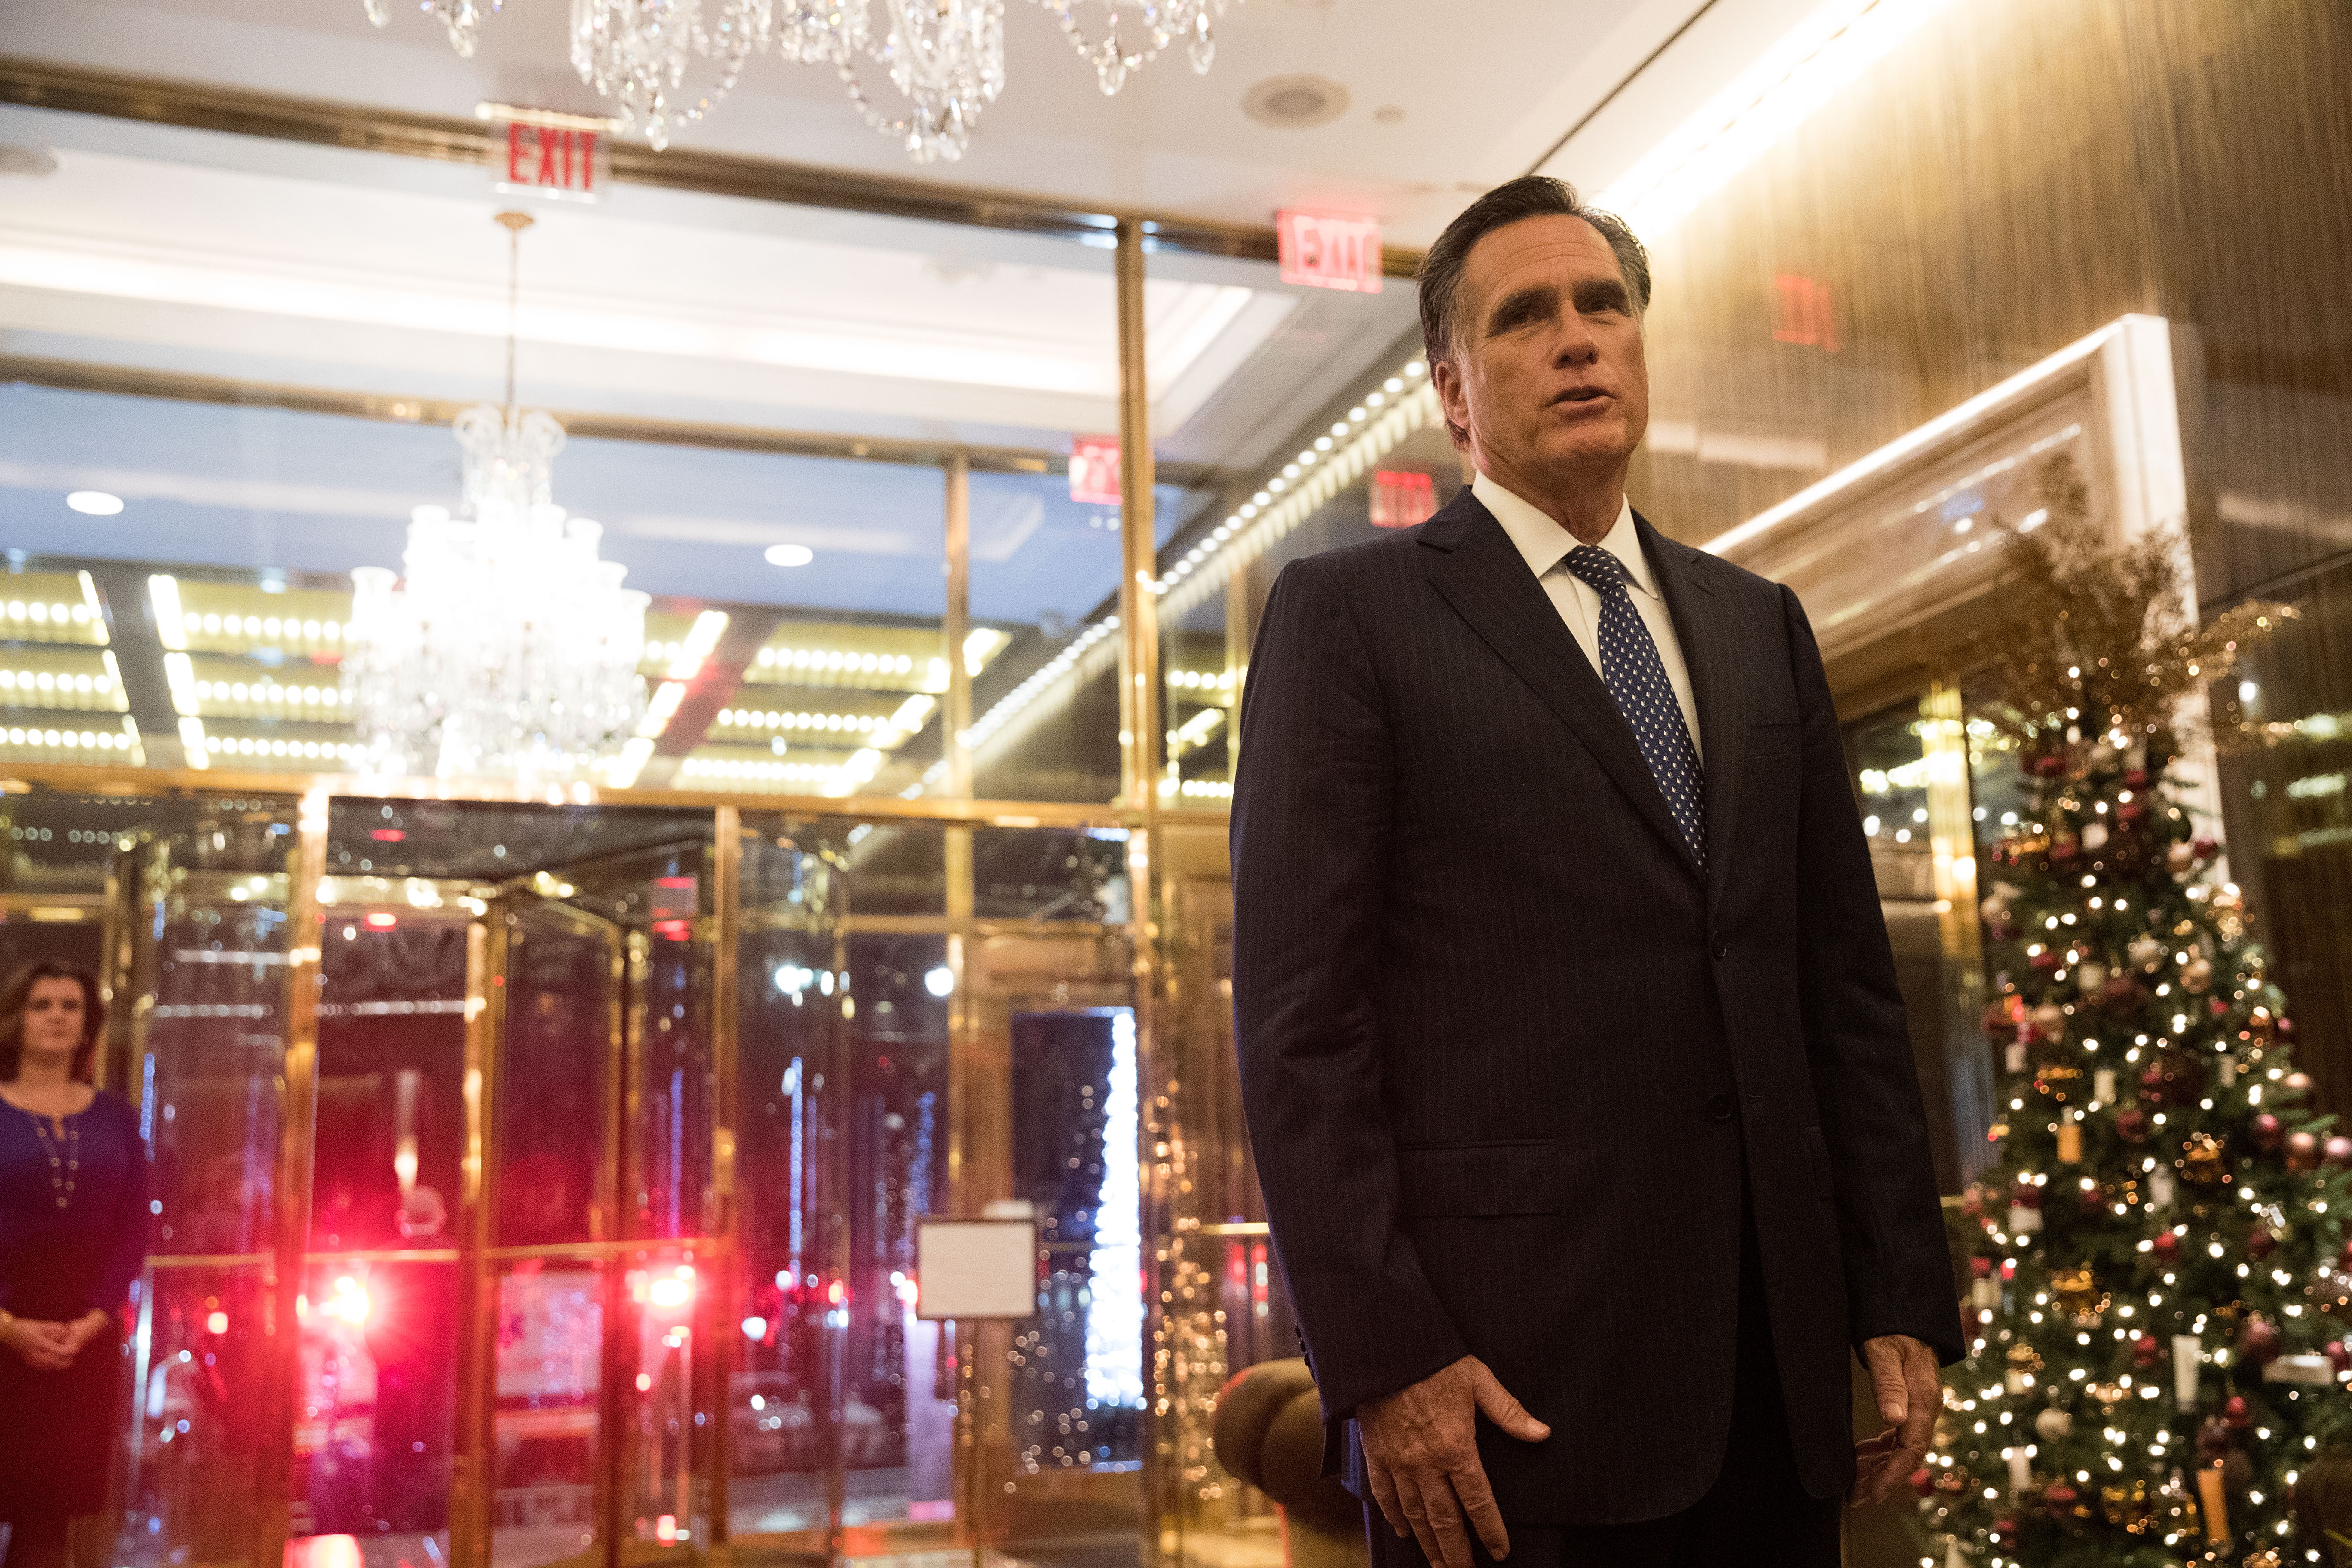 Mitt Romney speaks to reporters after dining with President-elect Donald Trump at Jean Georges restaurant, November 29, 2016 in New York City.